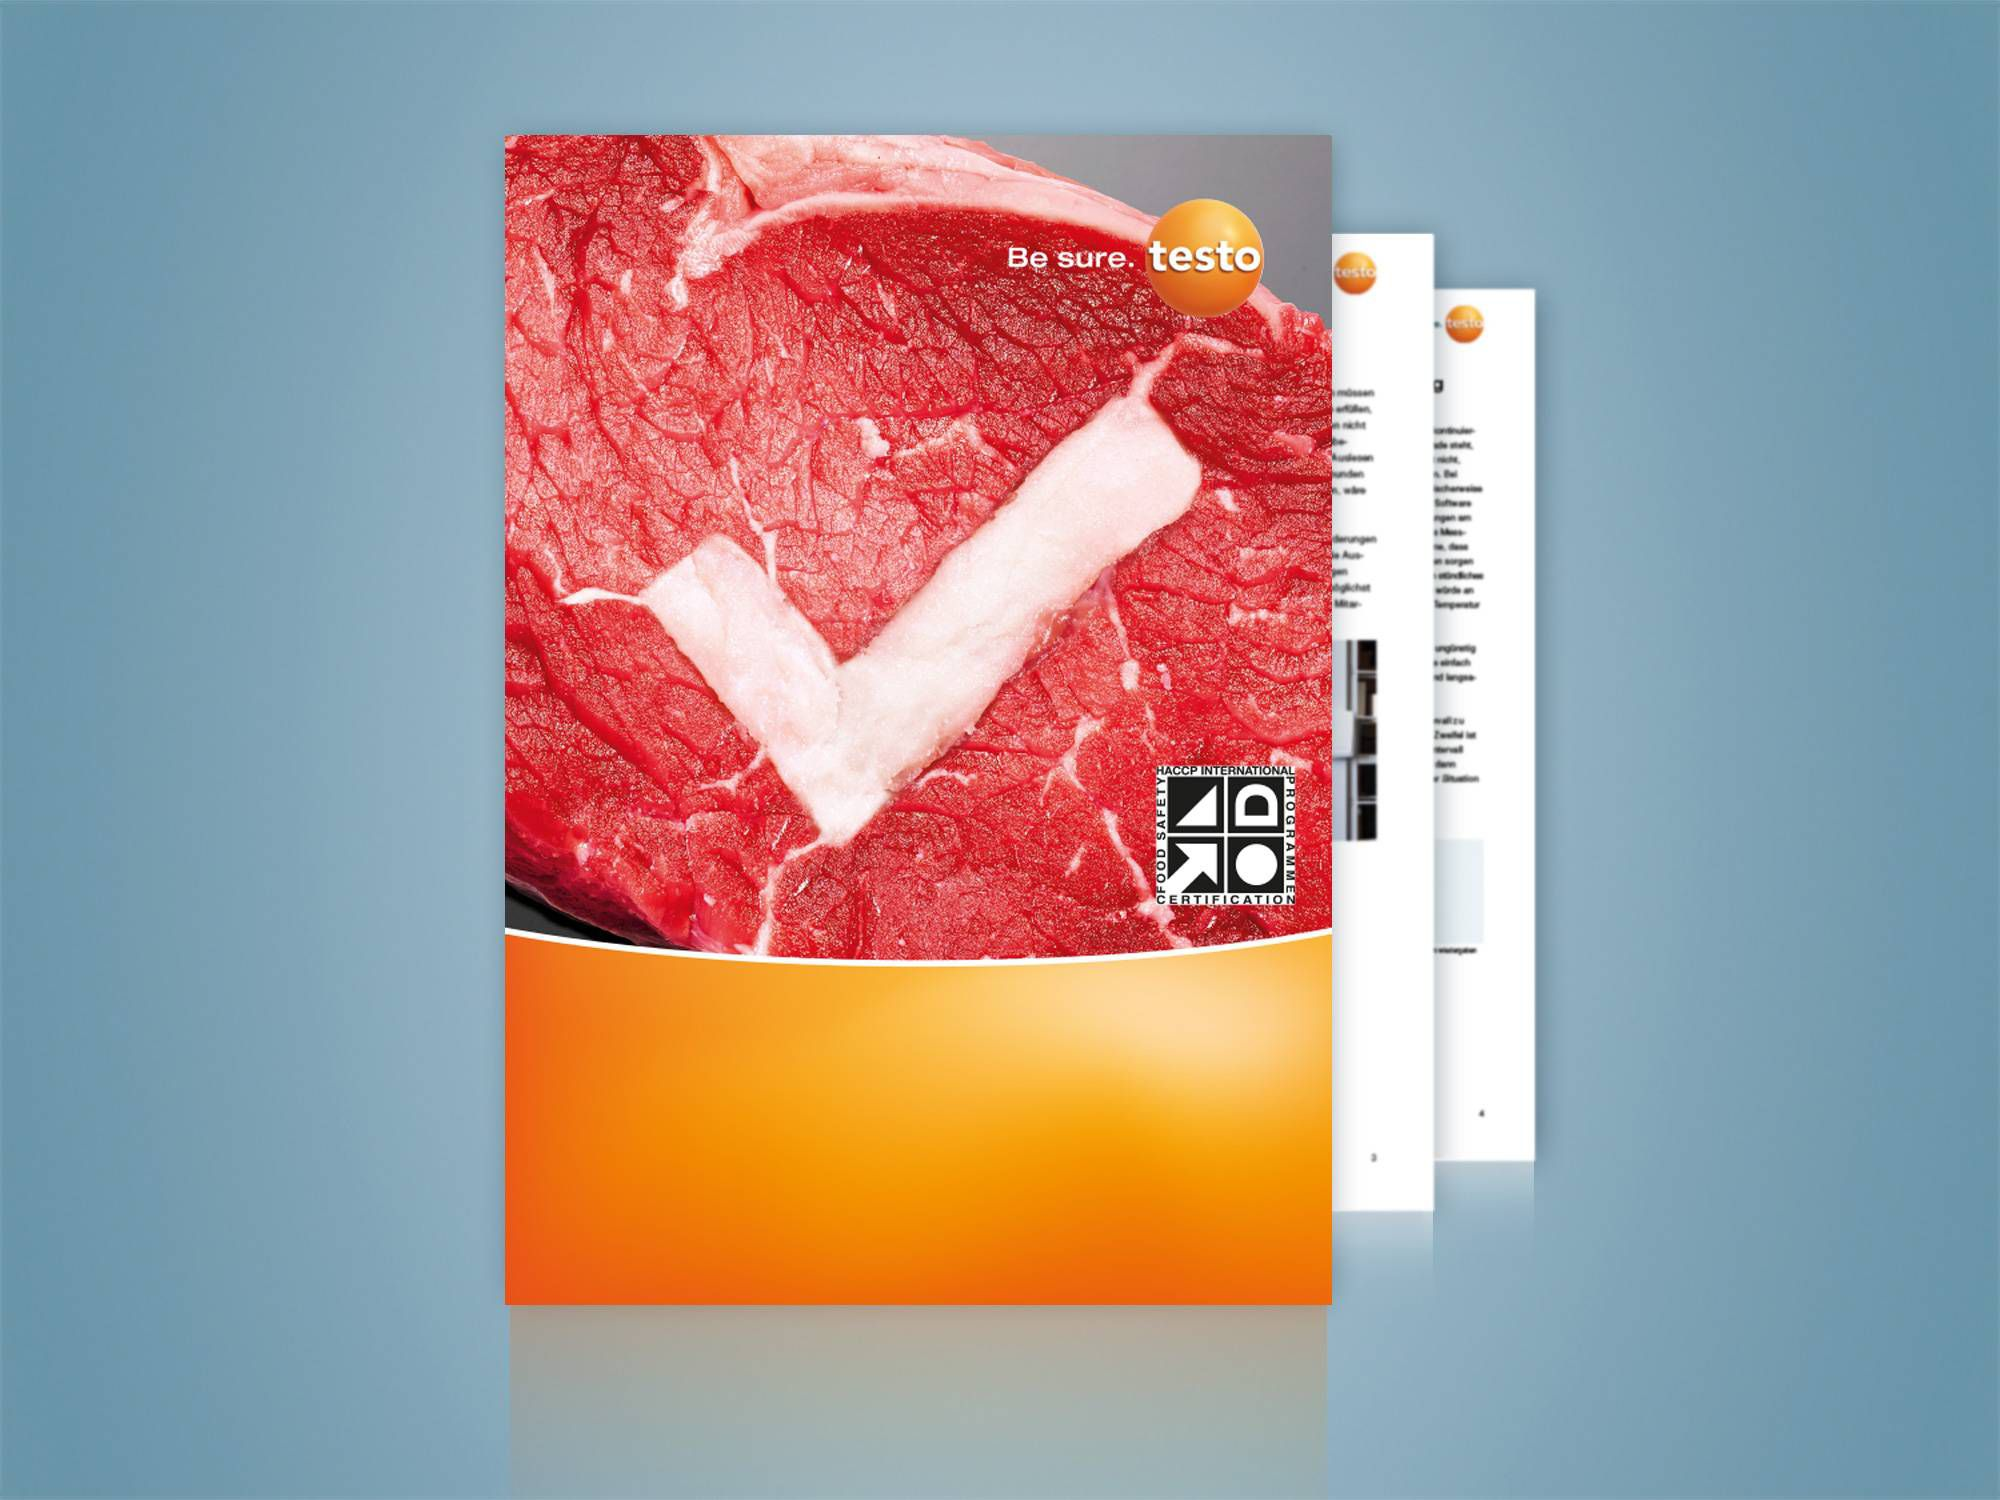 Download: Pocket Guide Food Safety